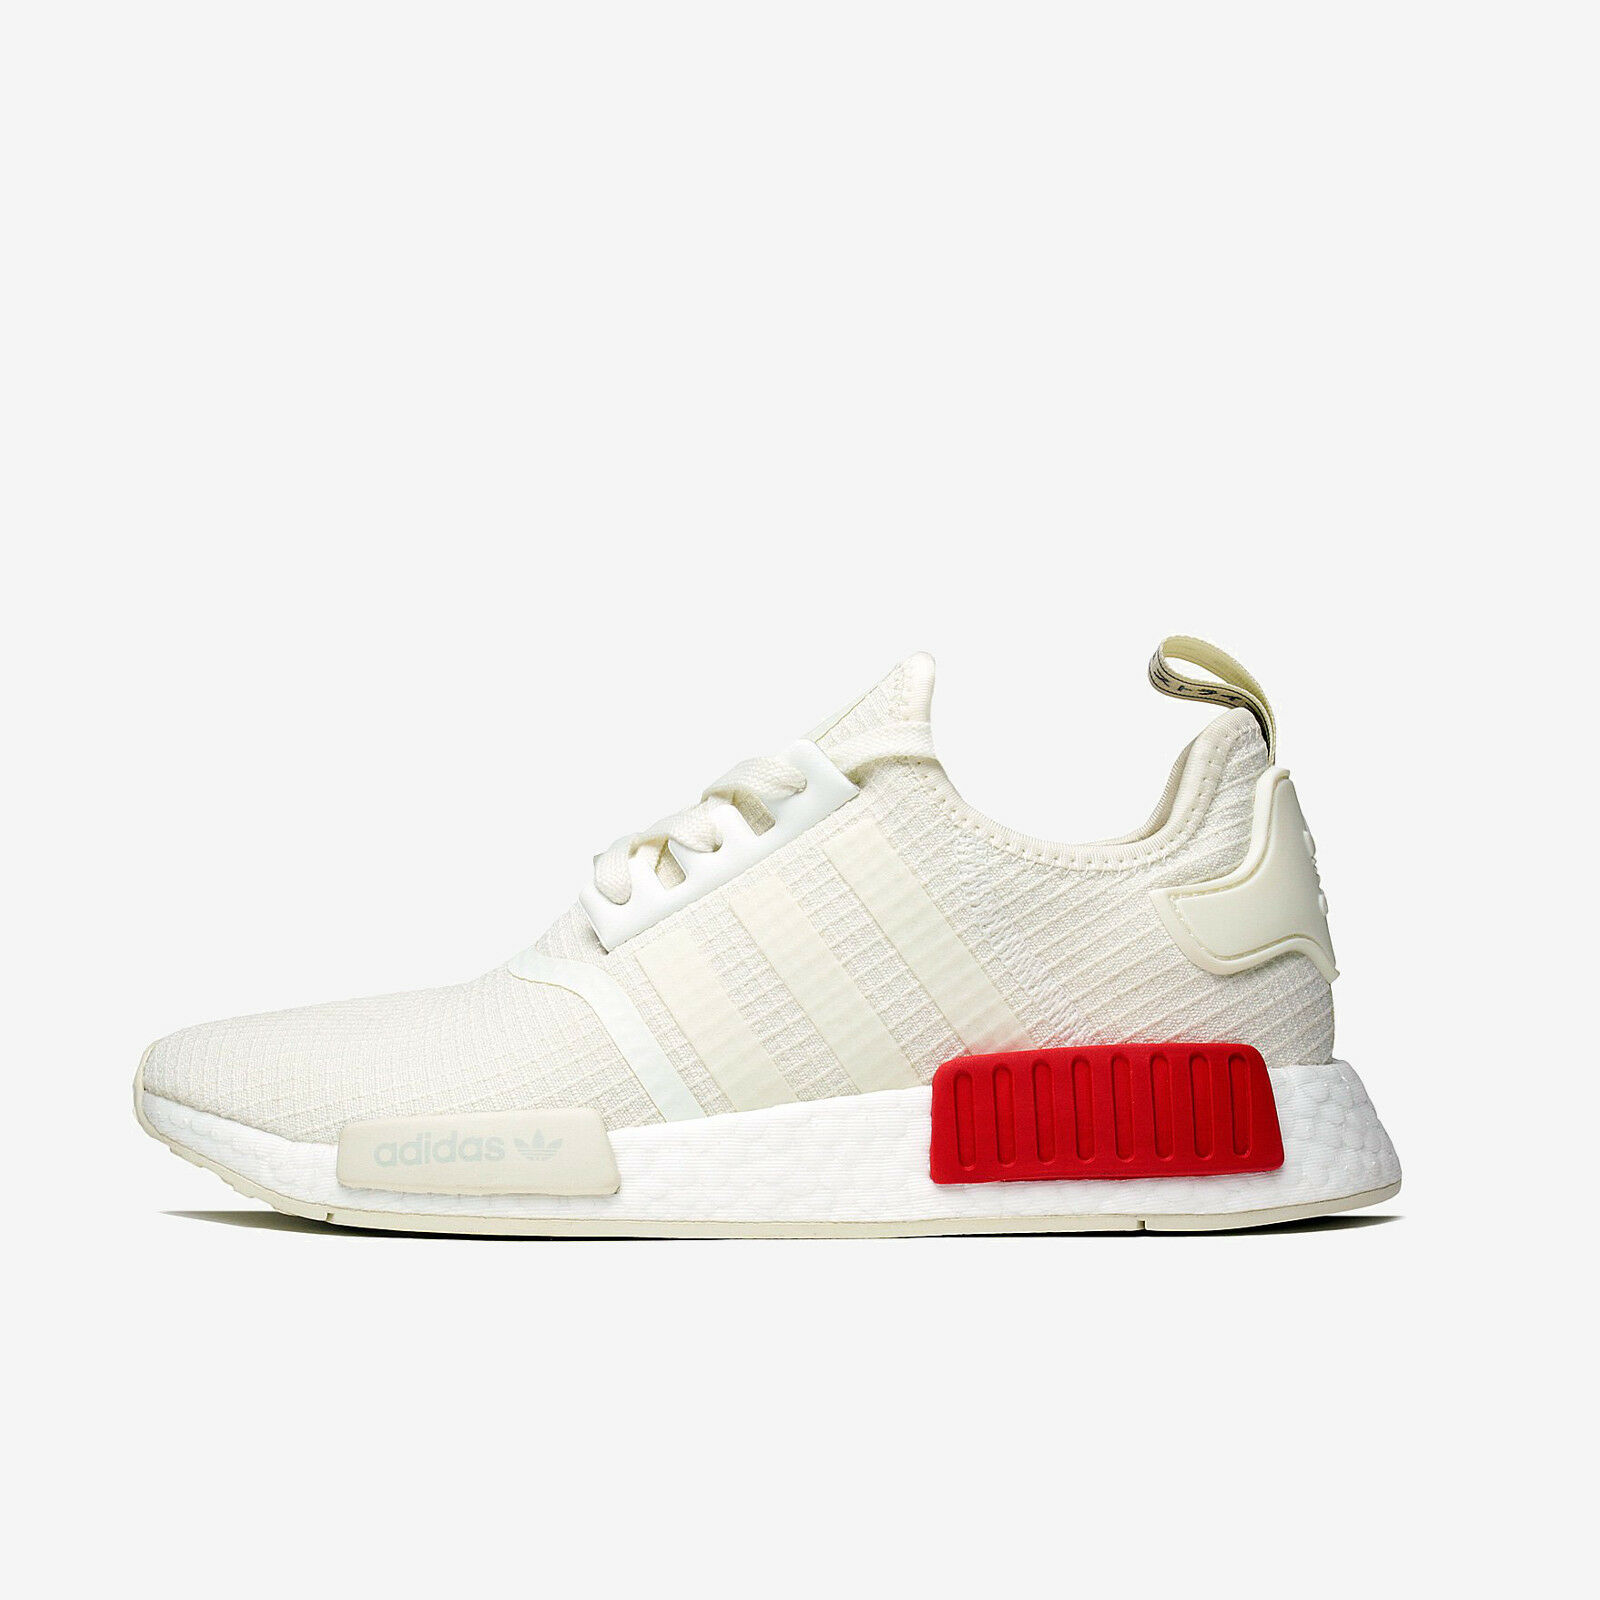 ADIDAS NMD R1 B37619 OFF-WHITE WHITE LUSH RED